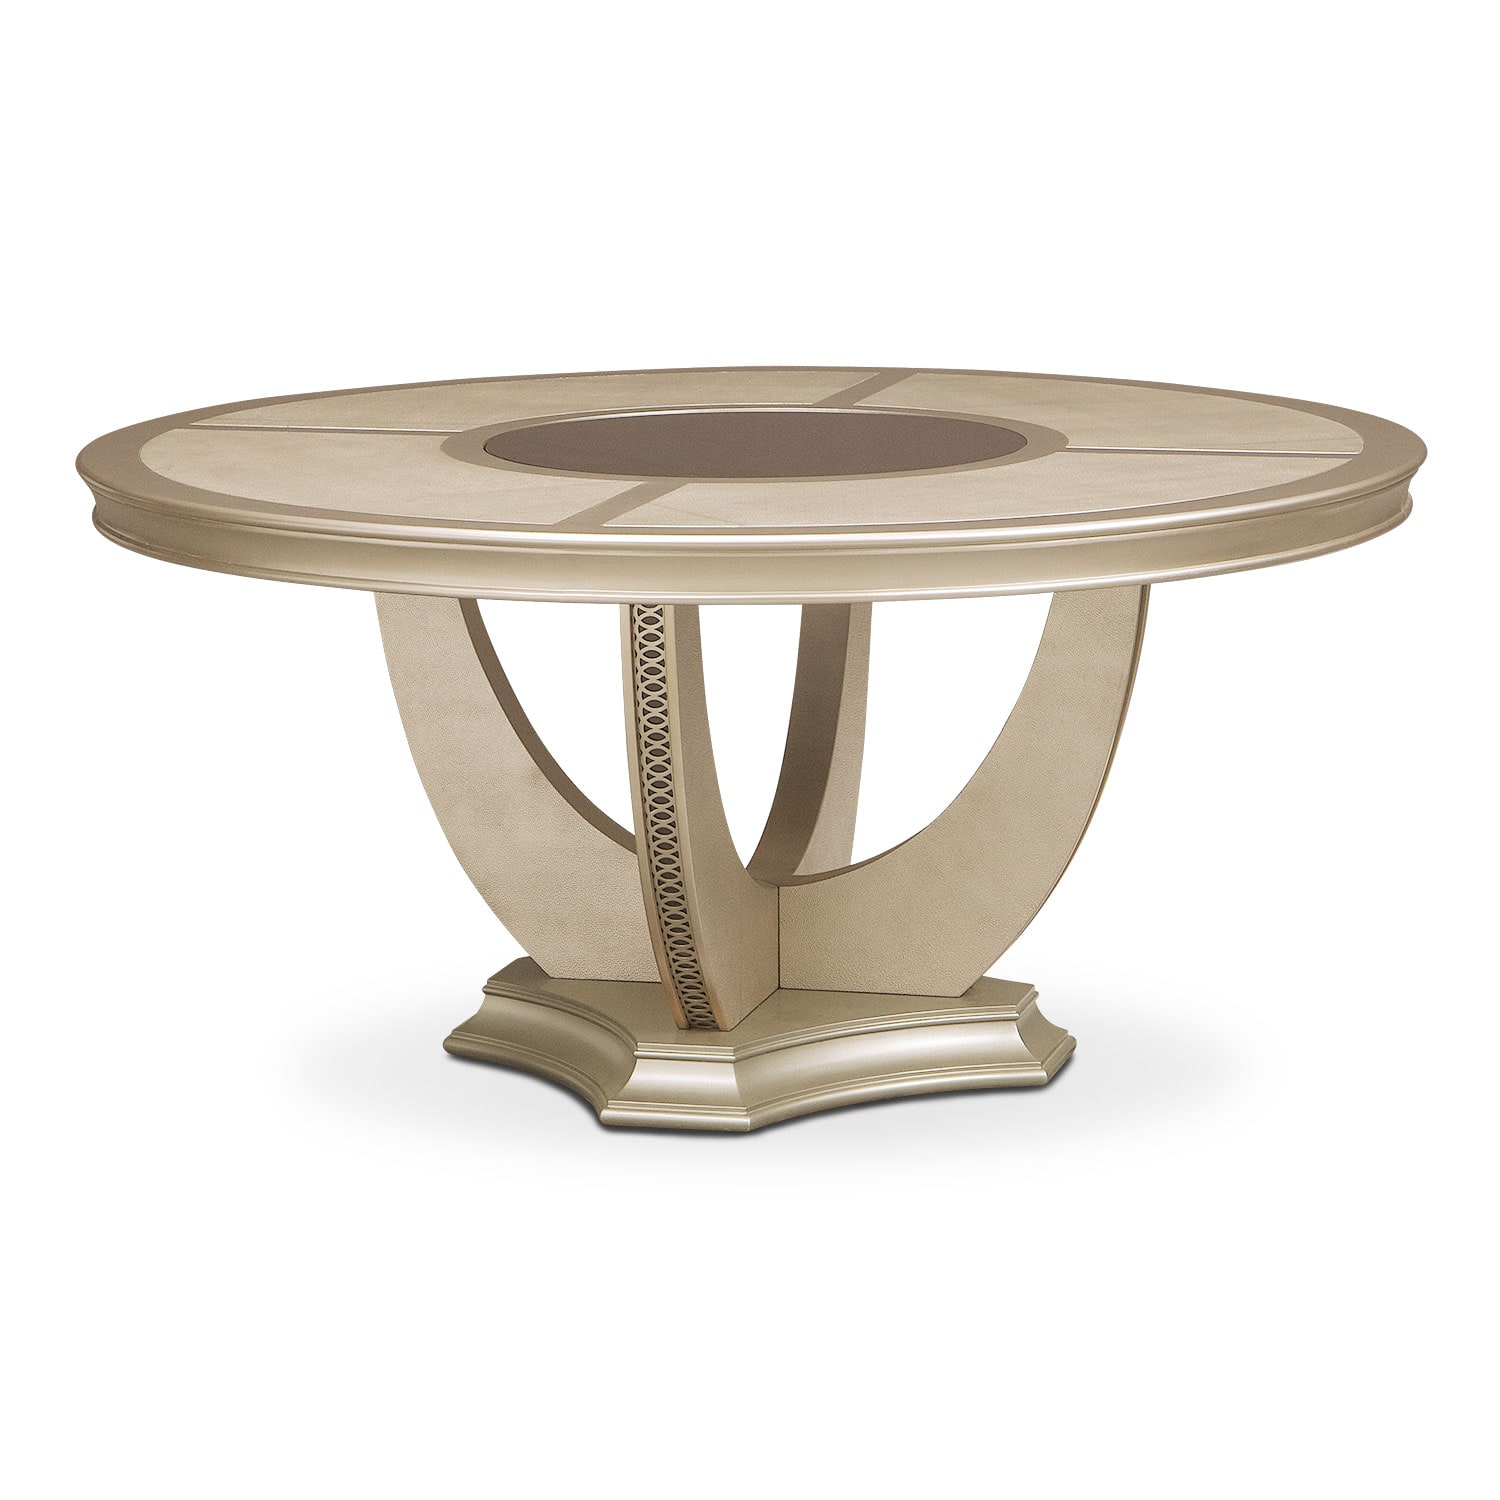 Dining Room Furniture - Allegro Round Dining Table